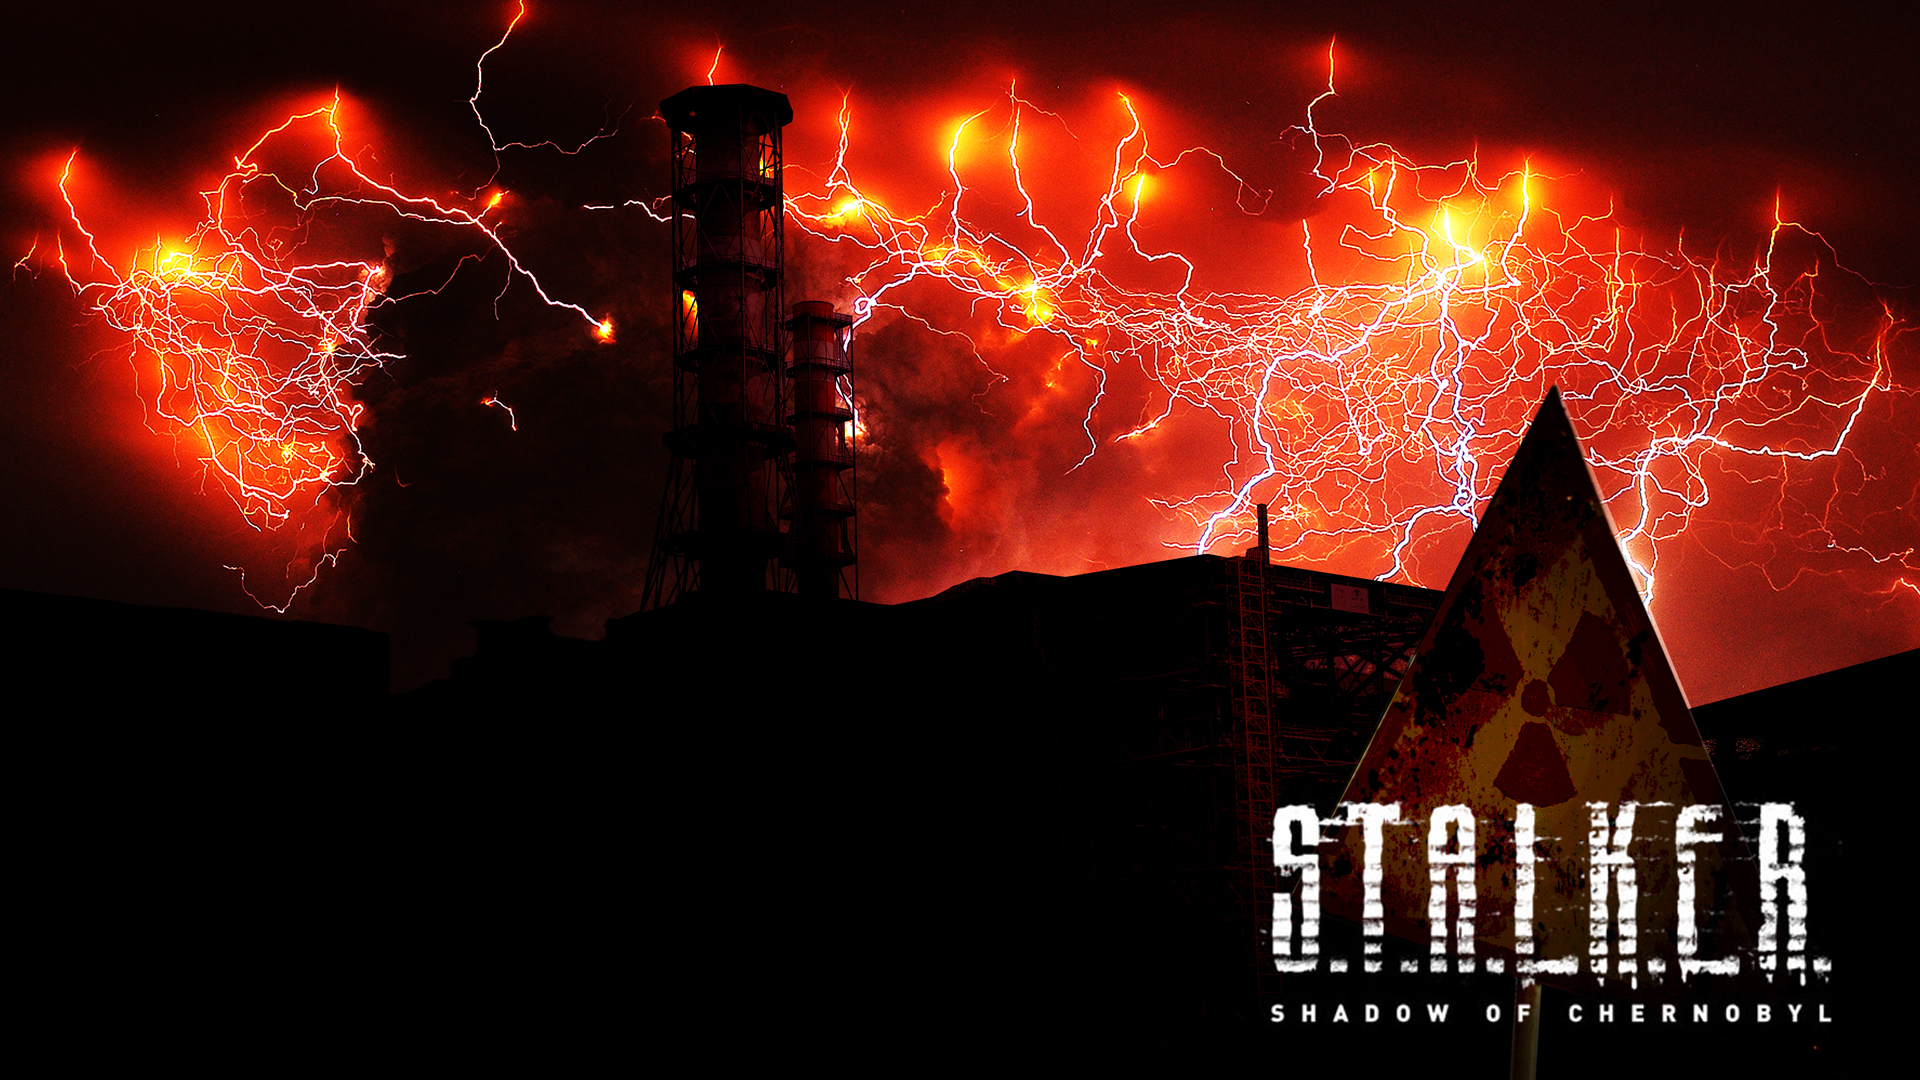 S T A L K E R Shadow Of Chernobyl Wallpaper By Corhellion On